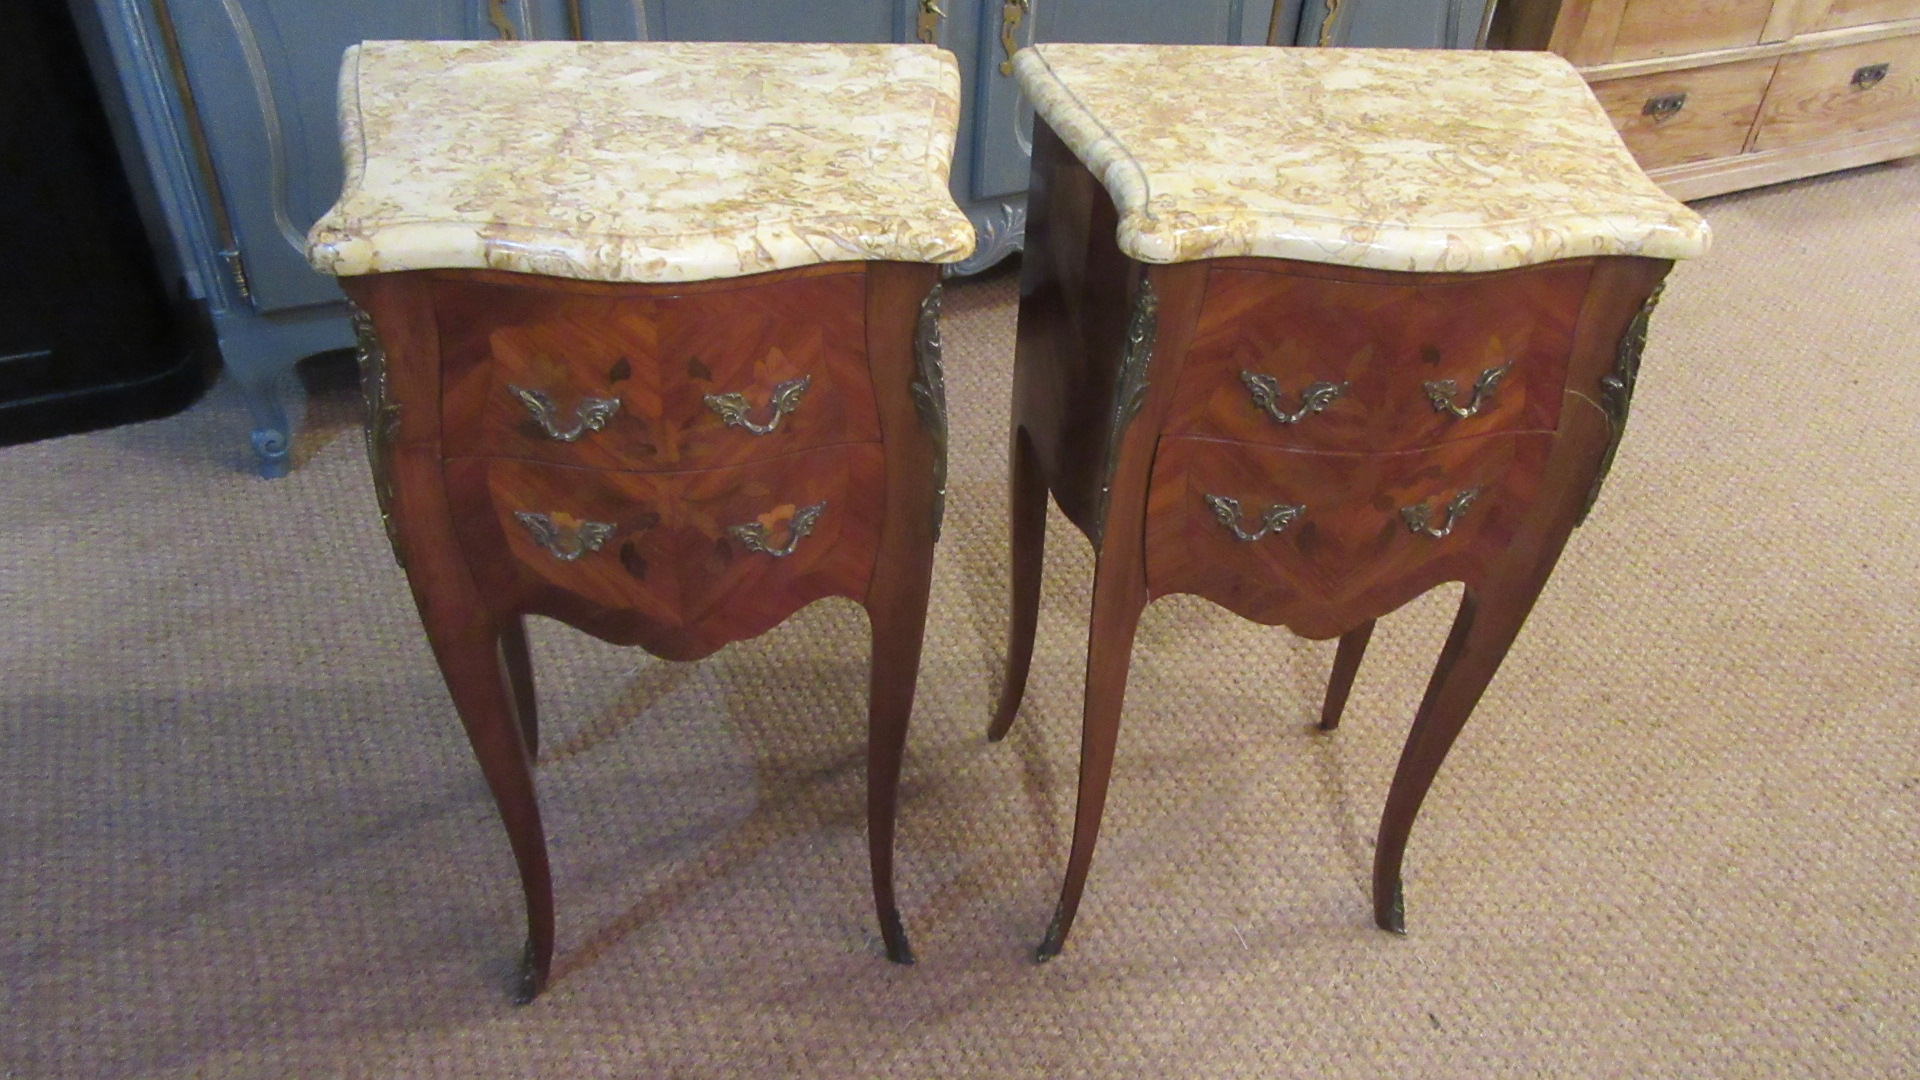 PAIR OF ANTIQUE FRENCH INLAID BEDSIDES